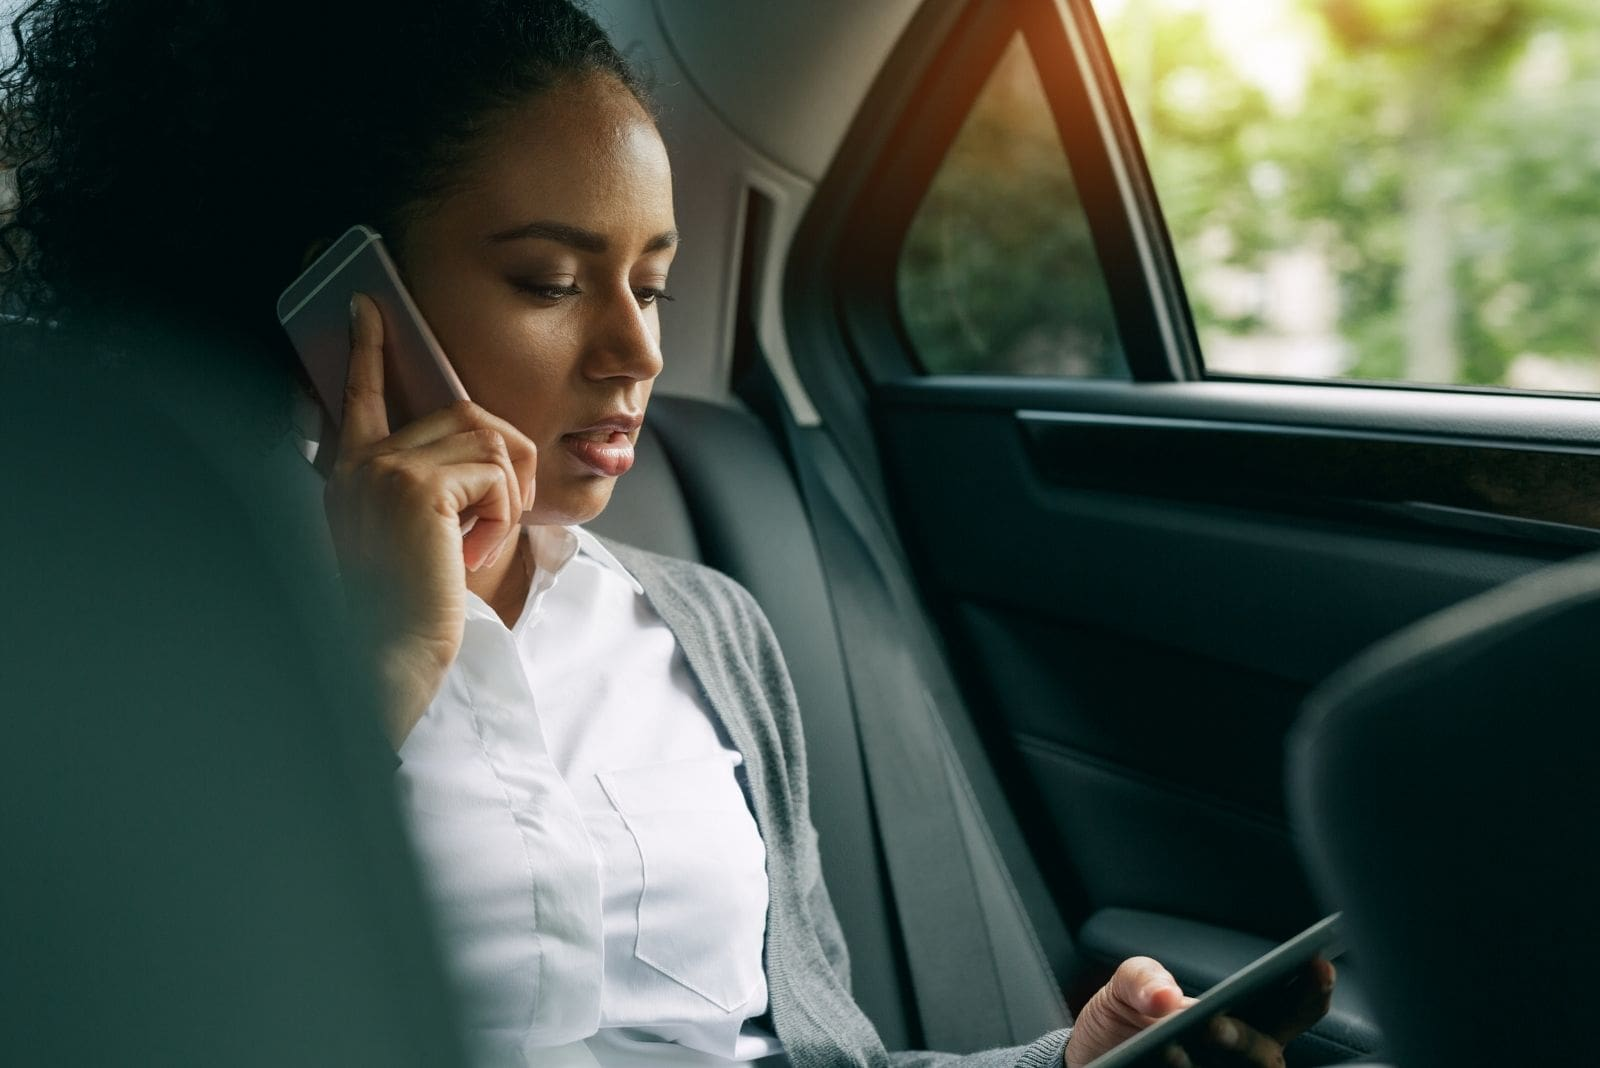 woman using phone in calling and browsing on the other inside the car sitting at the backseat